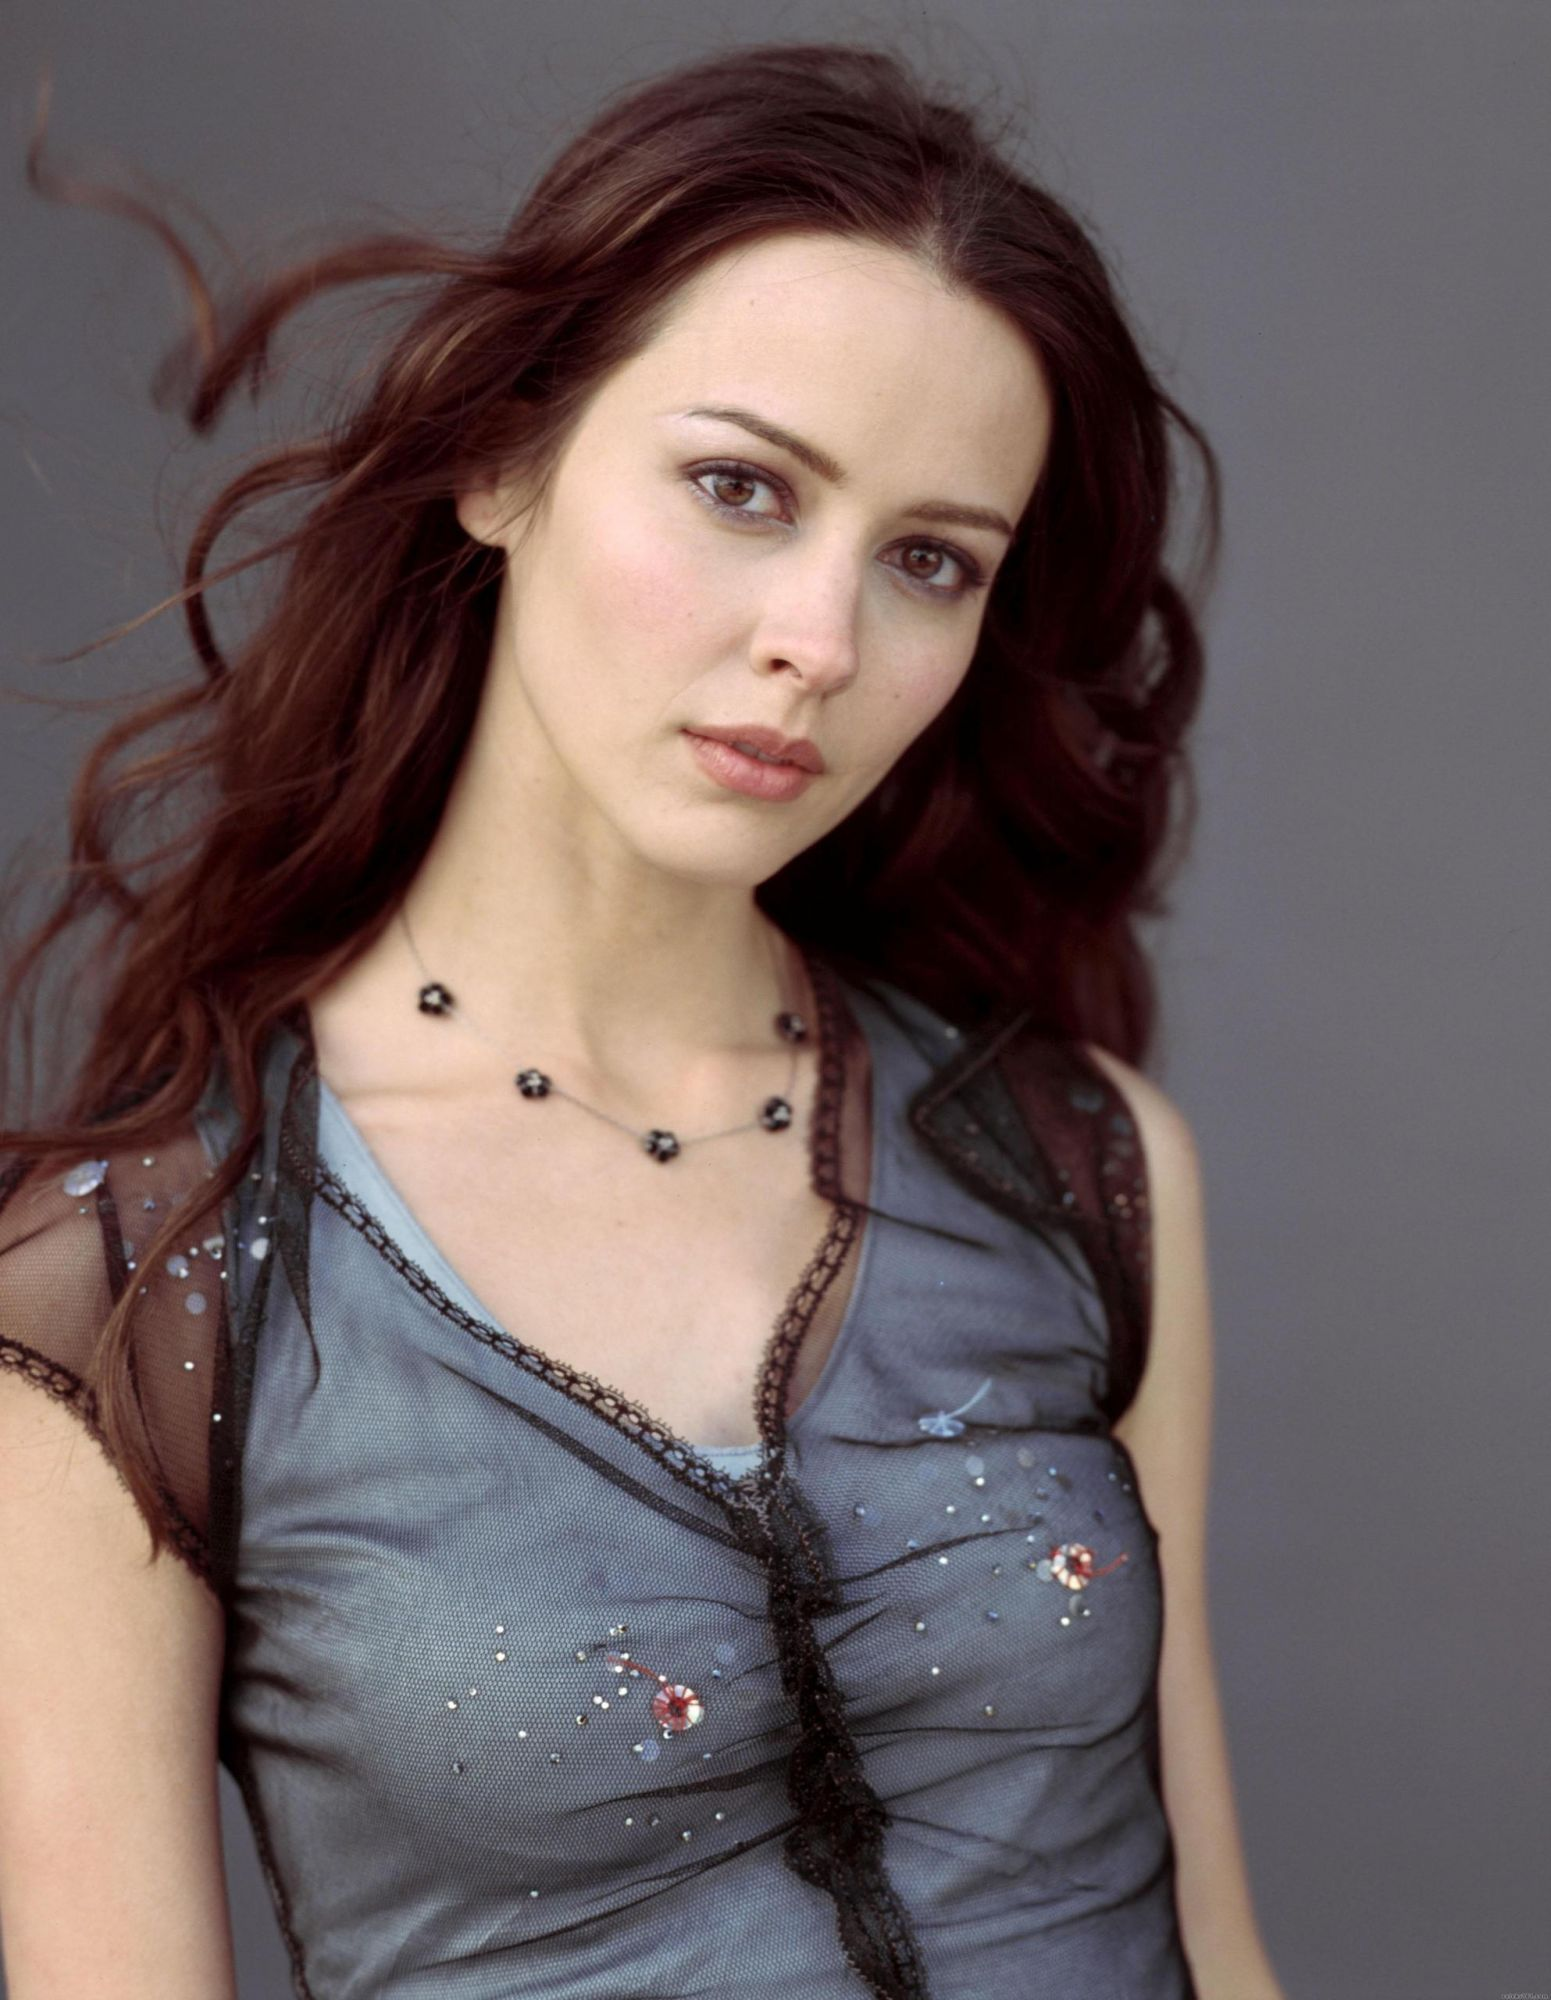 Amy Acker Nude Photos Awesome amy acker | (nsfw) various stars and celebrities | pinterest | amy